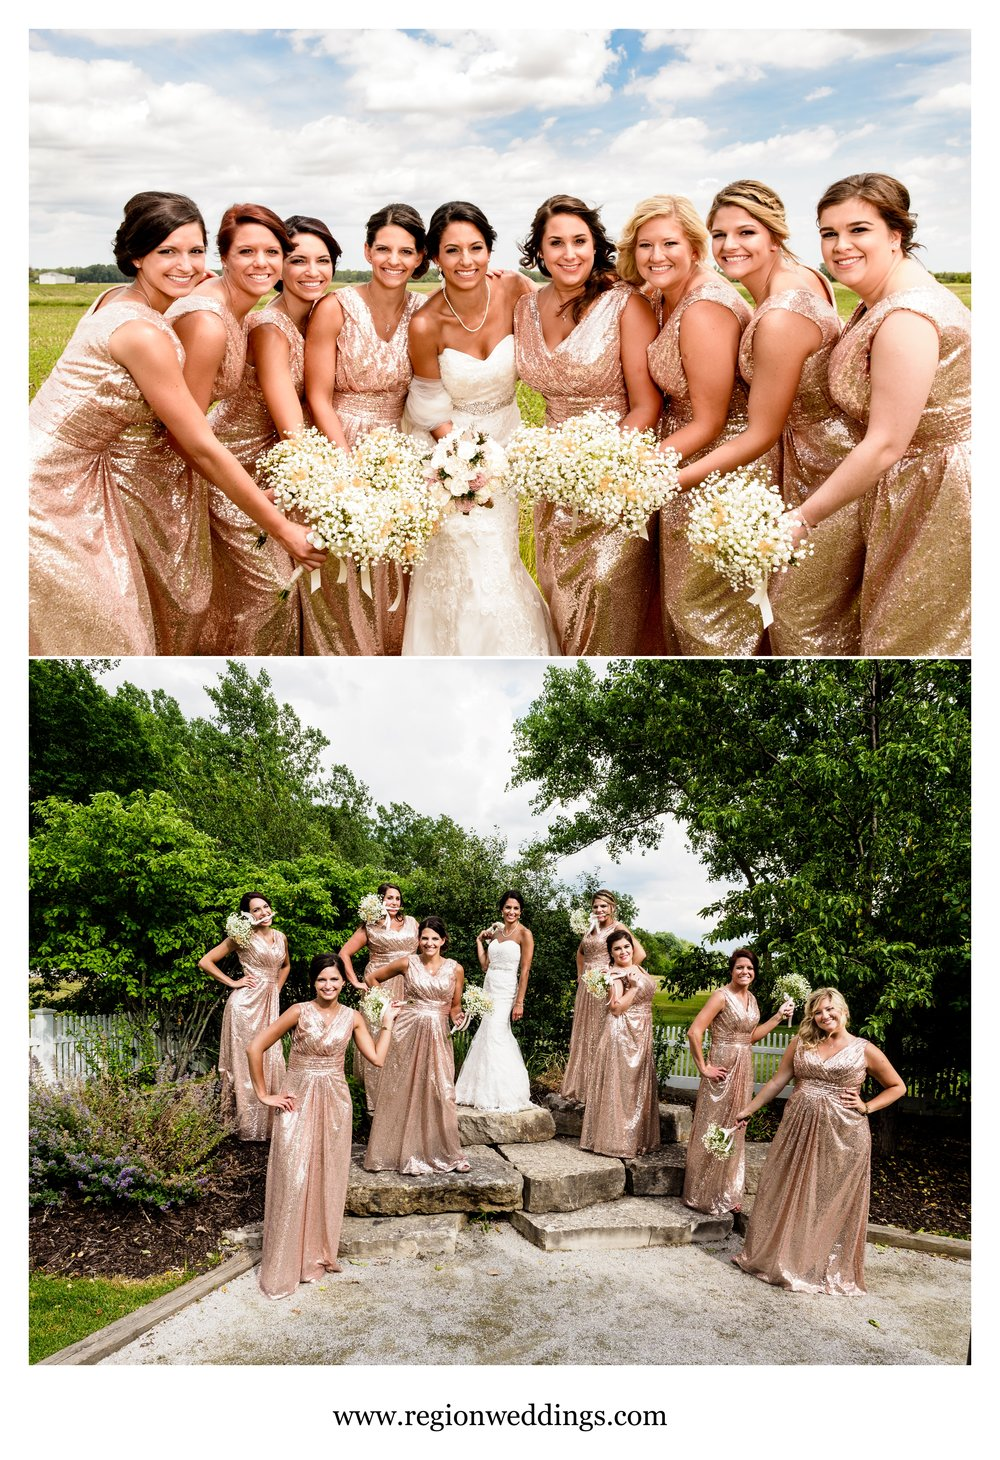 Bridesmaids photos at a June wedding.